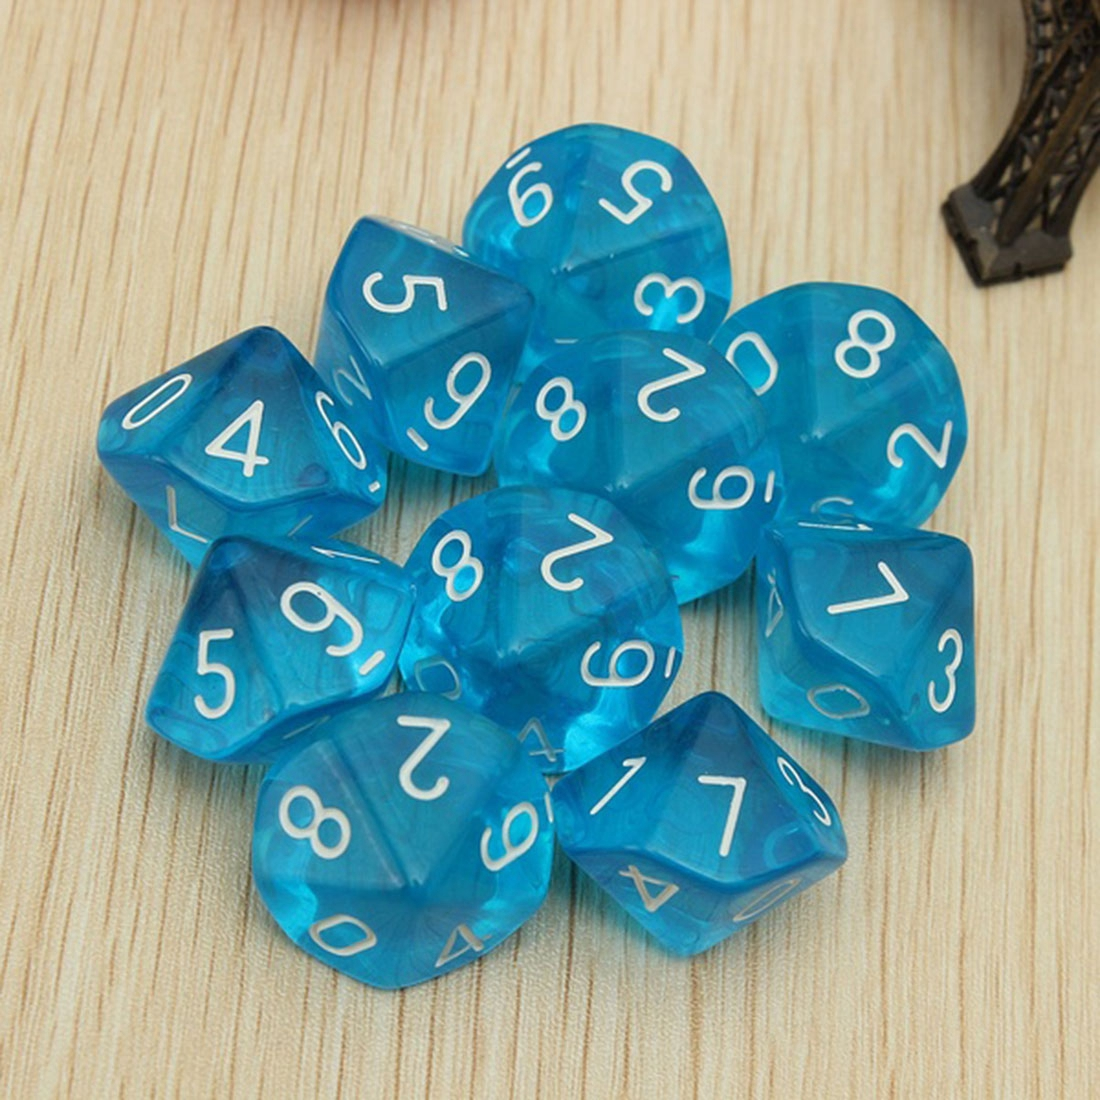 10-Dices D10 Ten Sided Gem Dice Die For RPG Dungeons&Dragons Board Table Games (7 Colors)